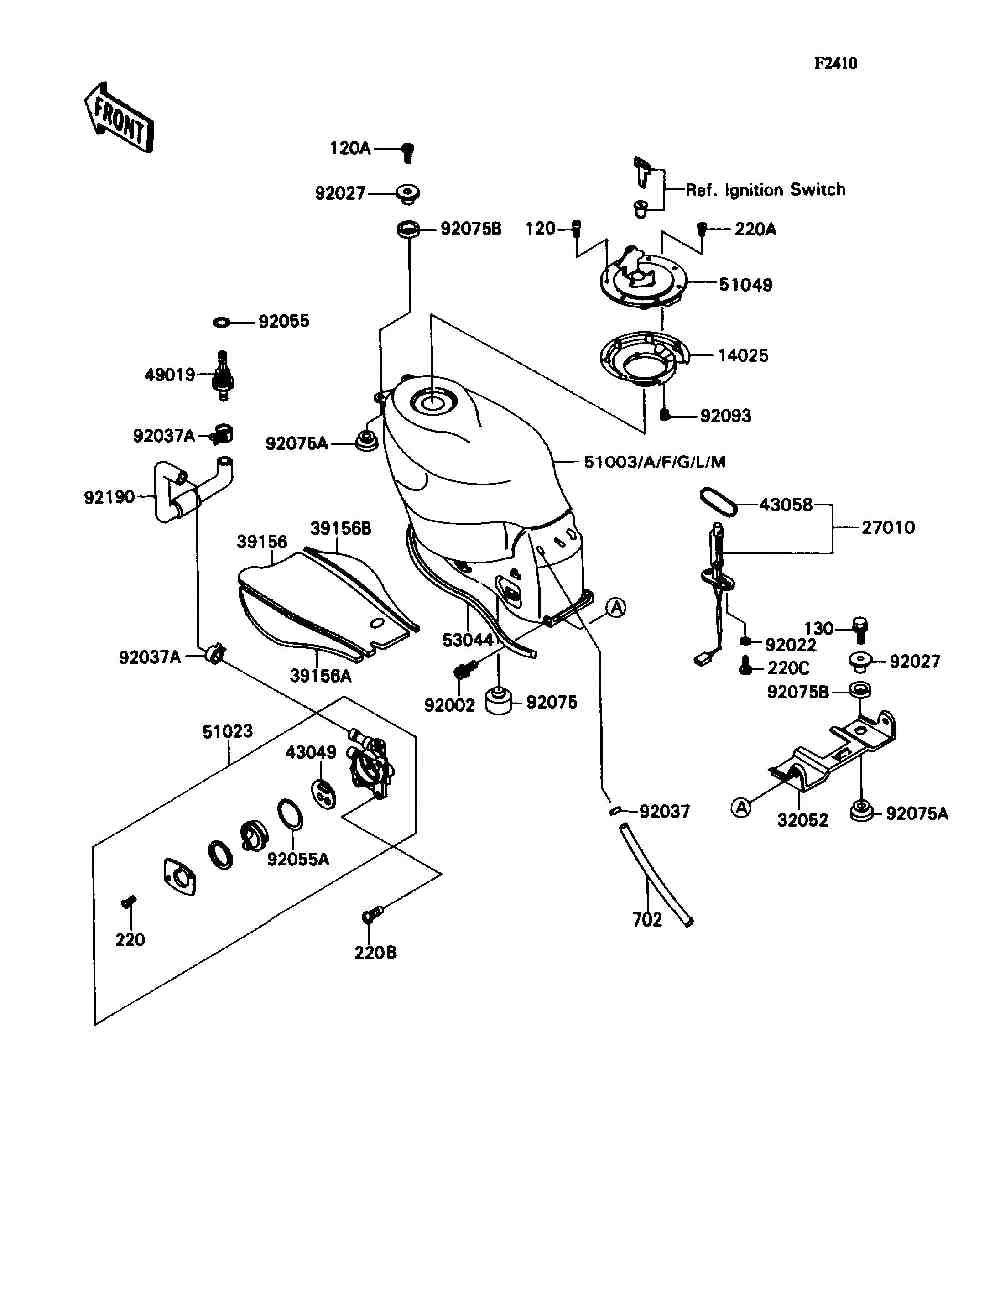 Honda Xr 185 Wiring Diagram Page 2 And Schematics Kawasaki Parts Finder 1992 Motorcycles Vanderzee Motorplex In South Haven Mi